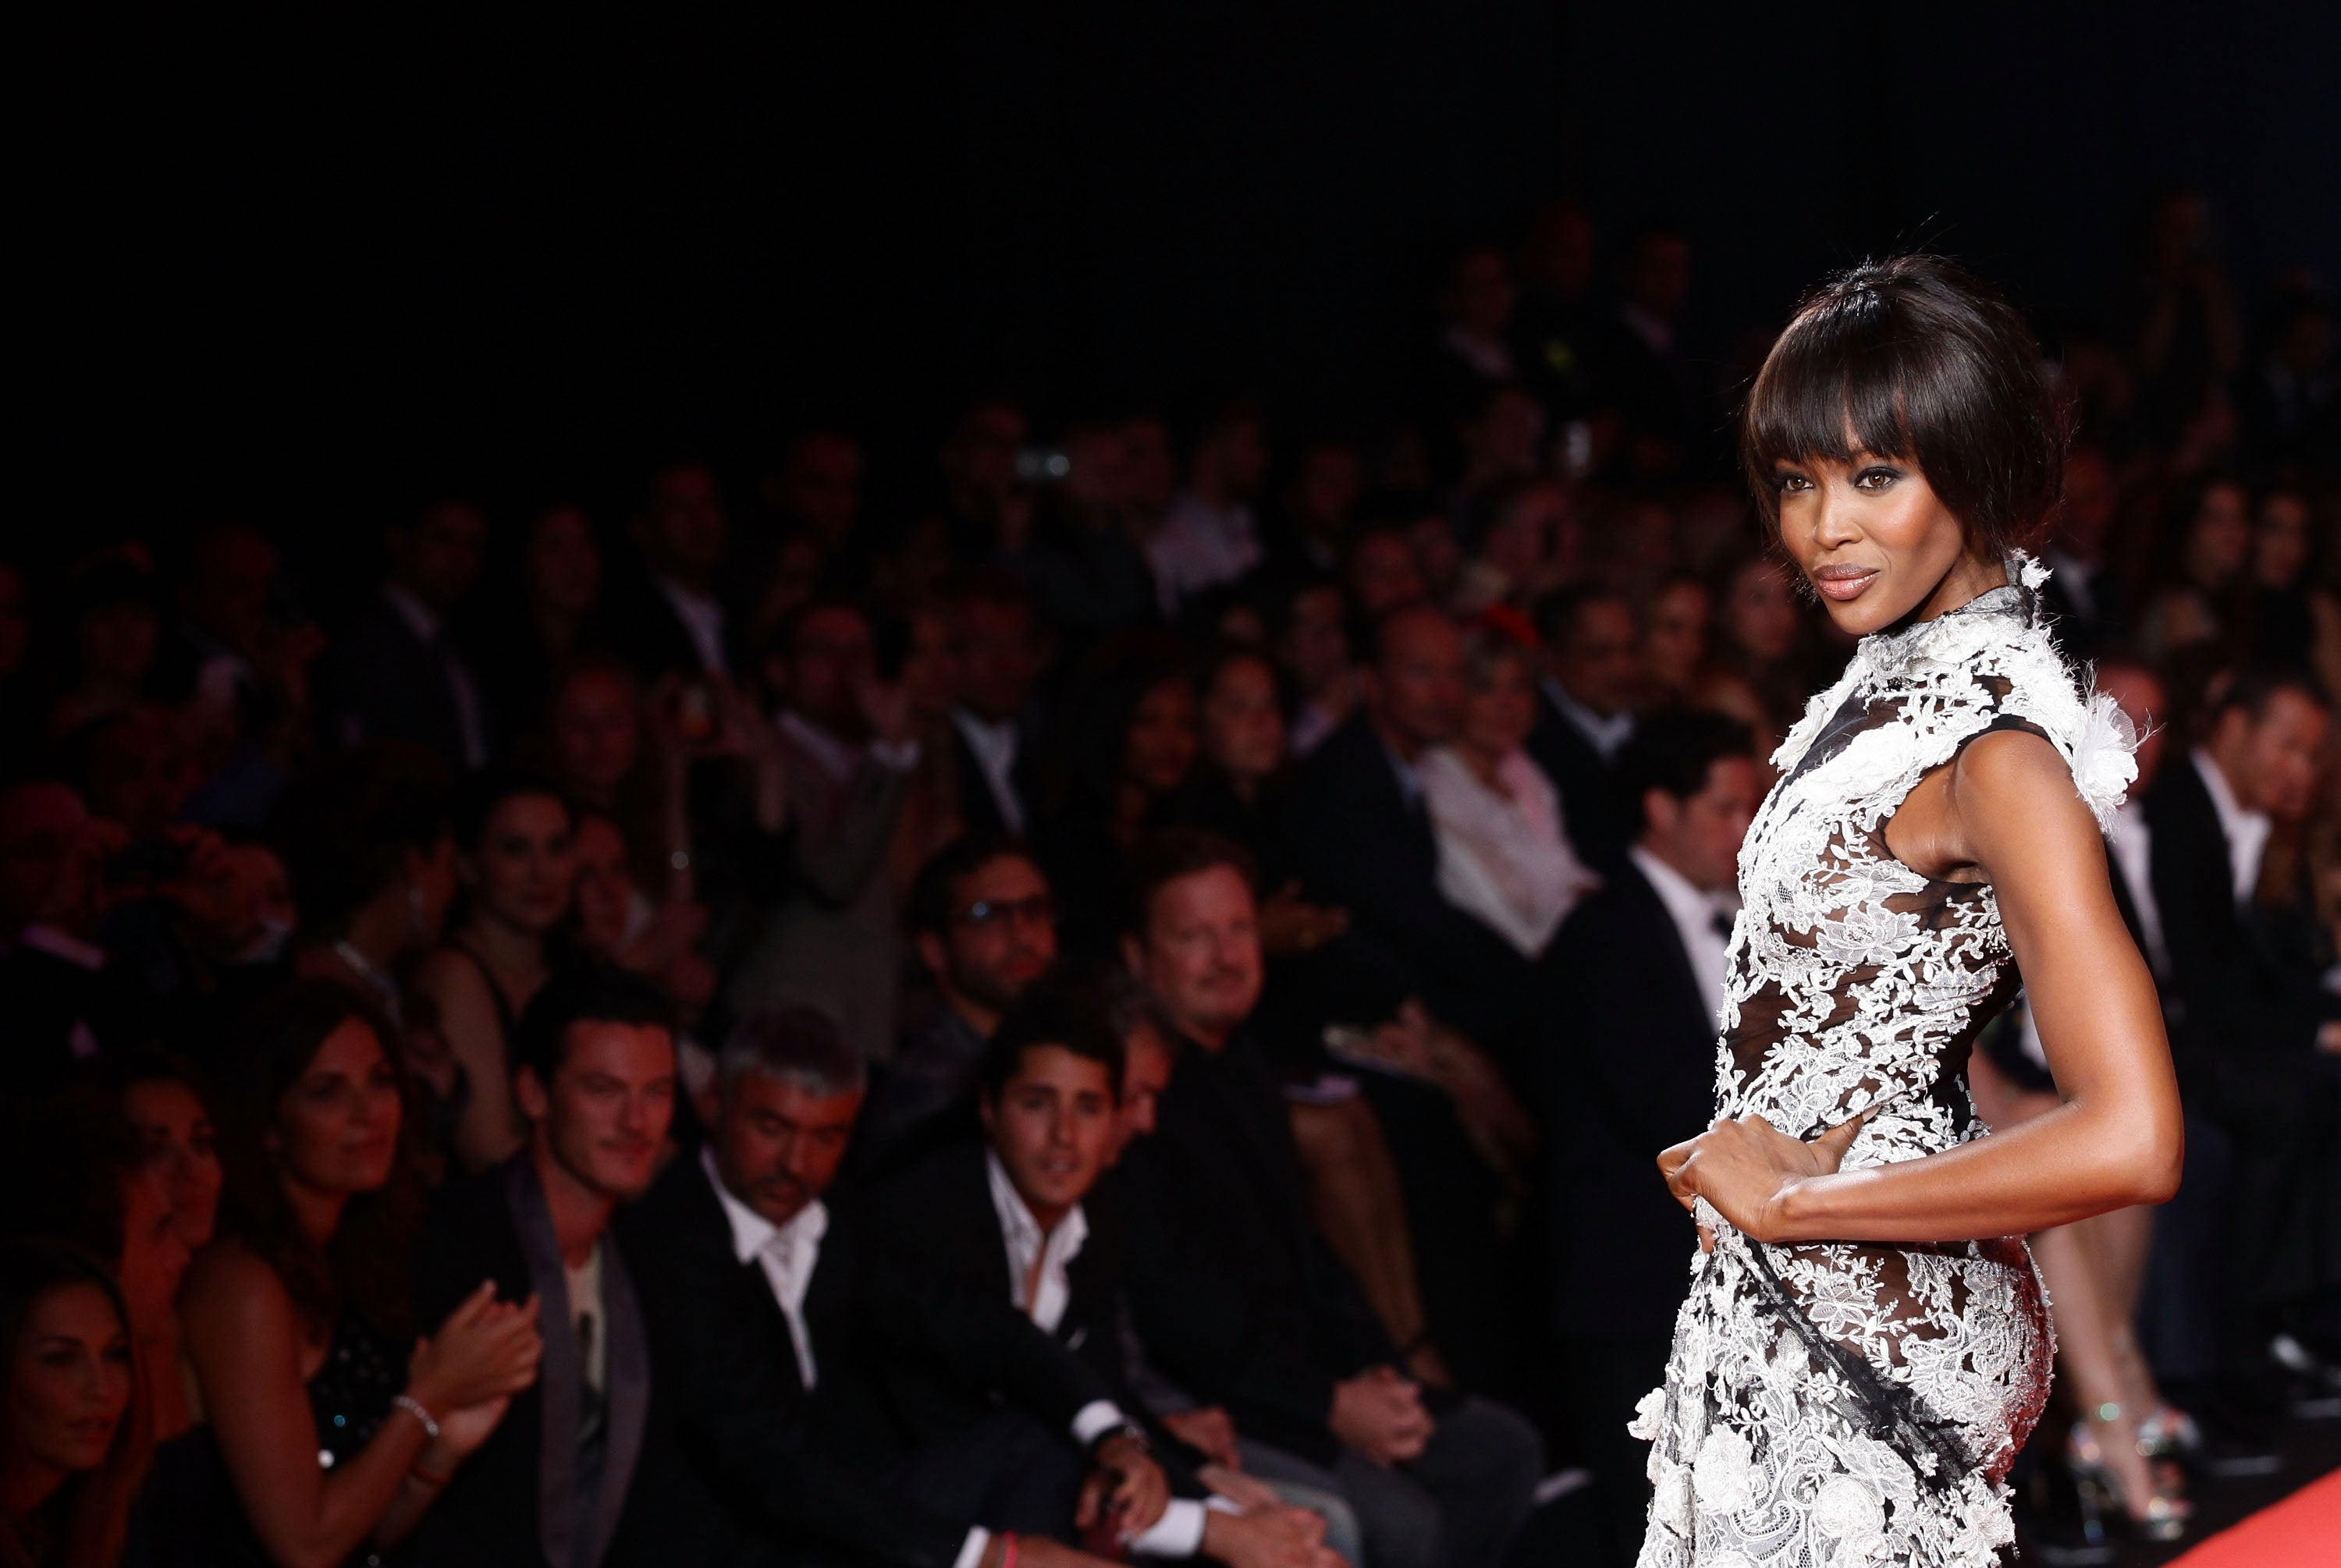 7 Times Naomi Campbell Snatched Wigs With Her Iconic Catwalk